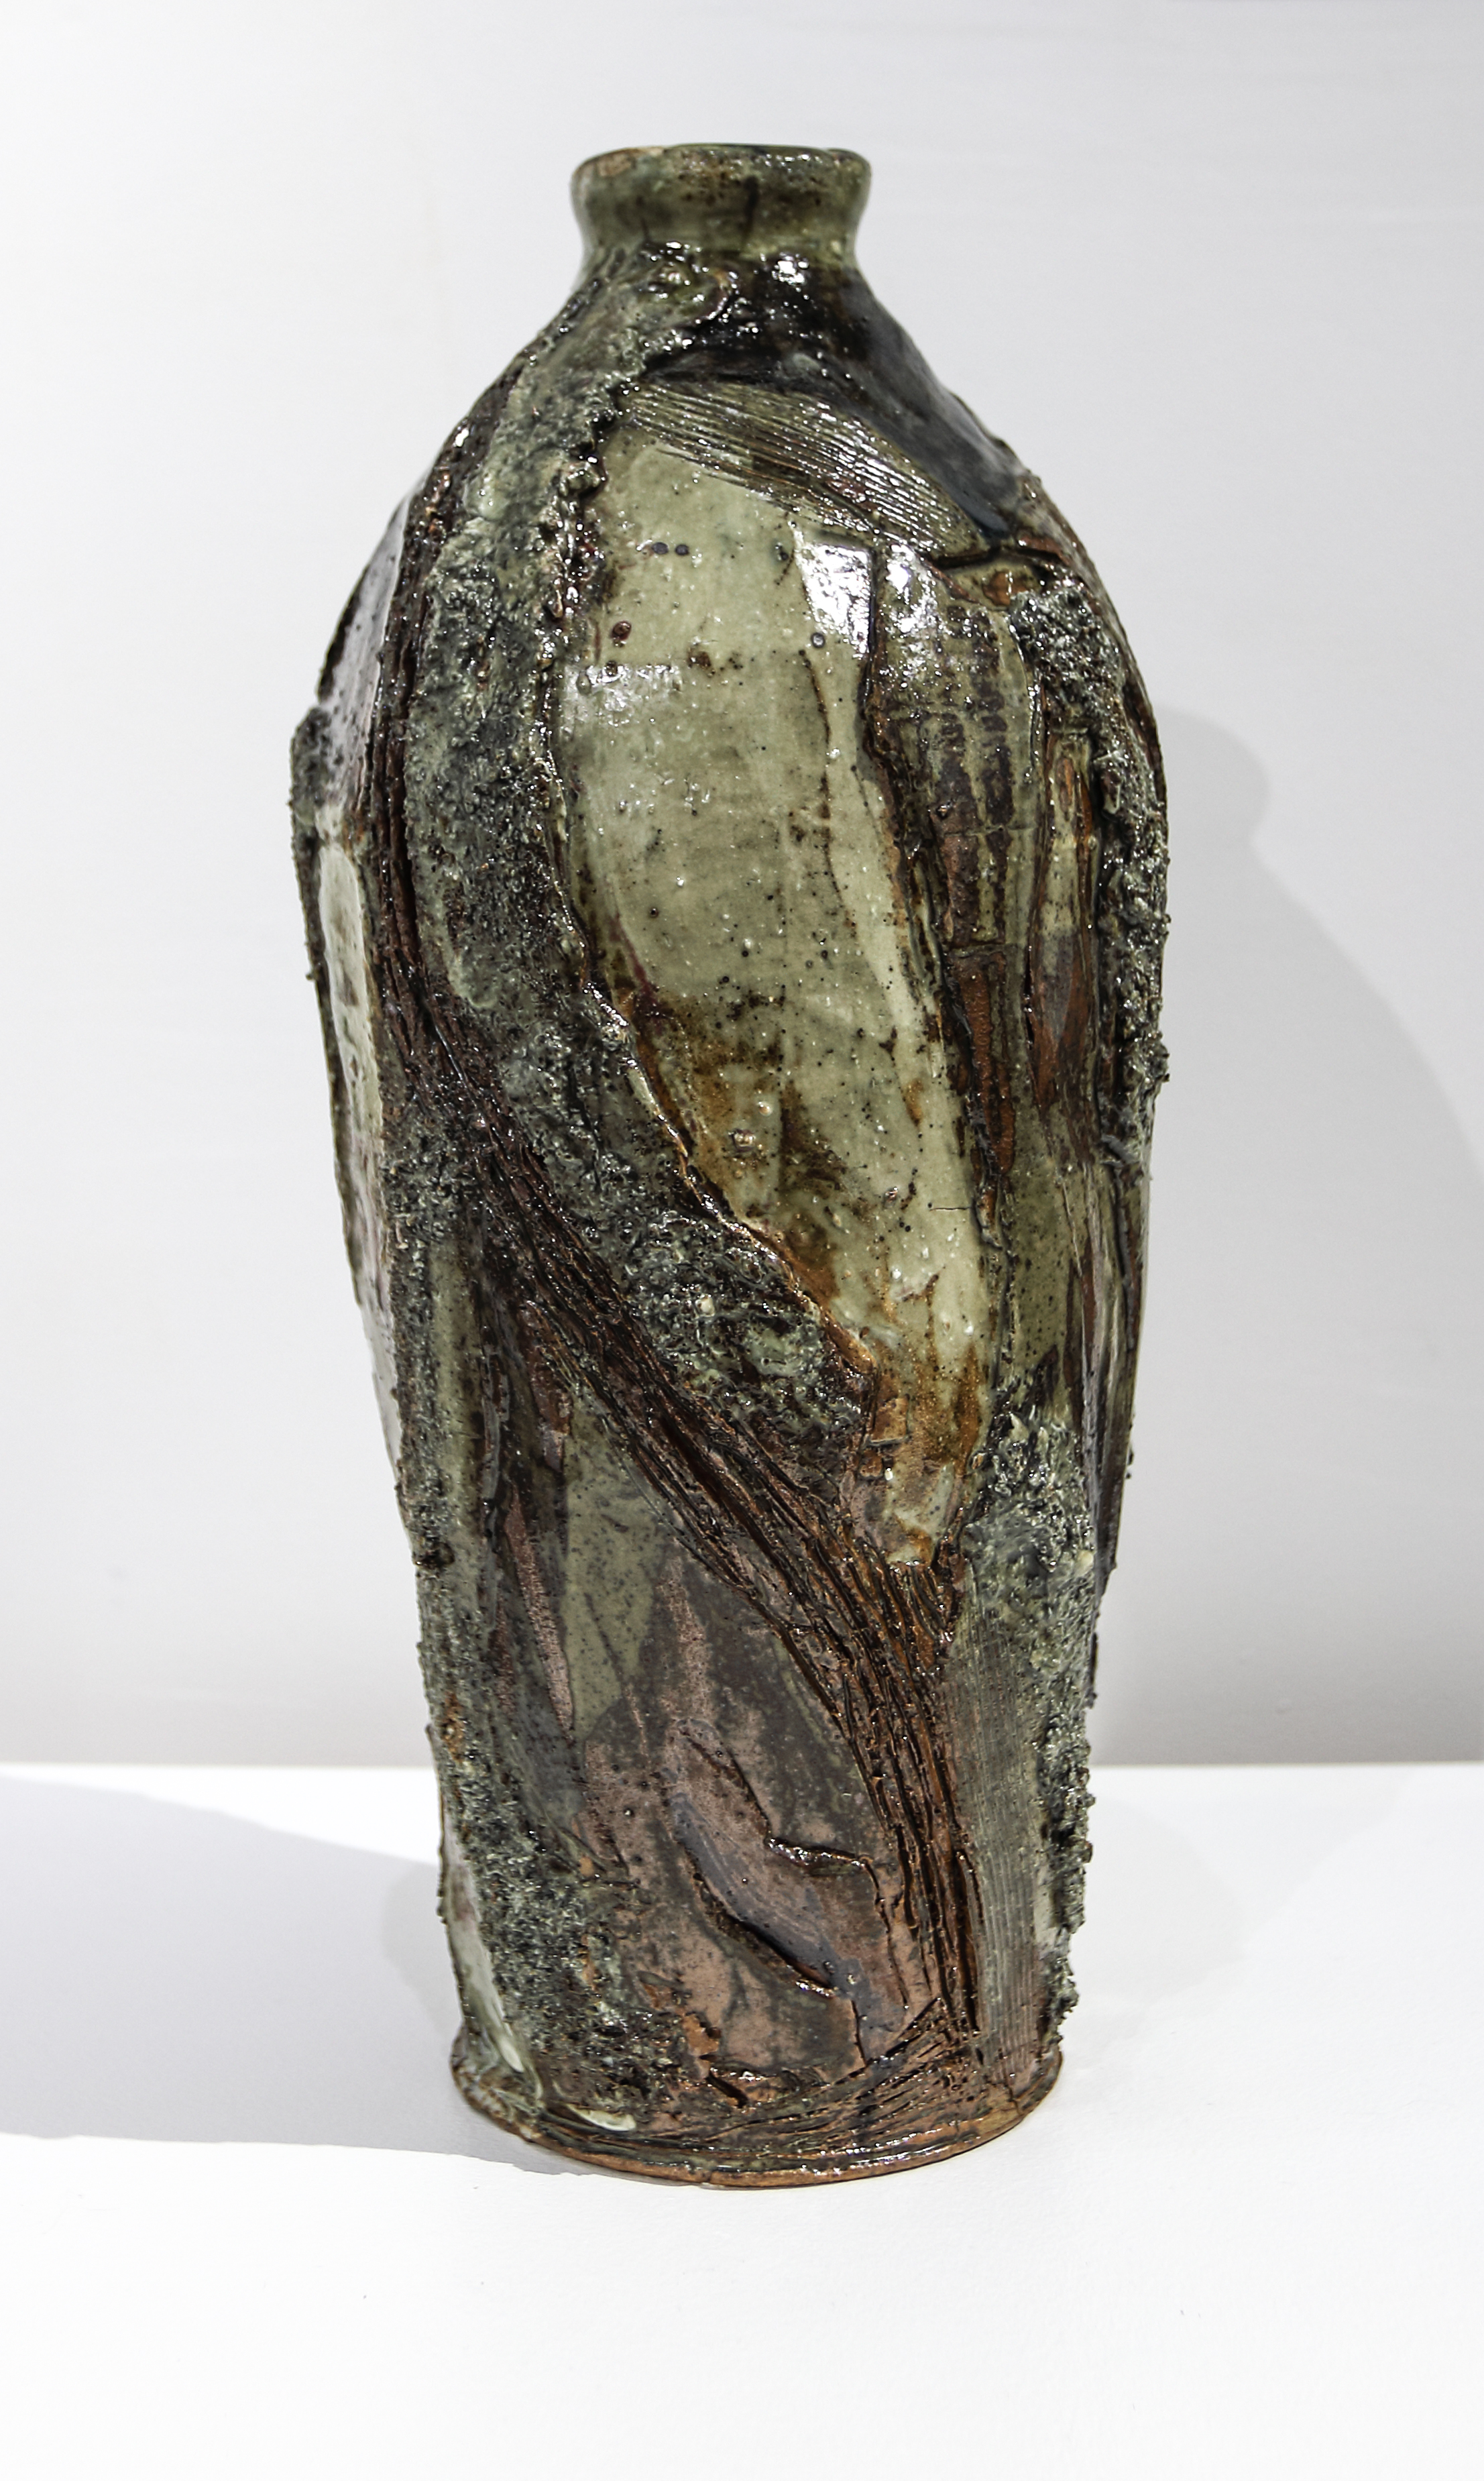 Terrence Bunce, 'Chwarel' Thrown, carved and altered bottle. SOLD